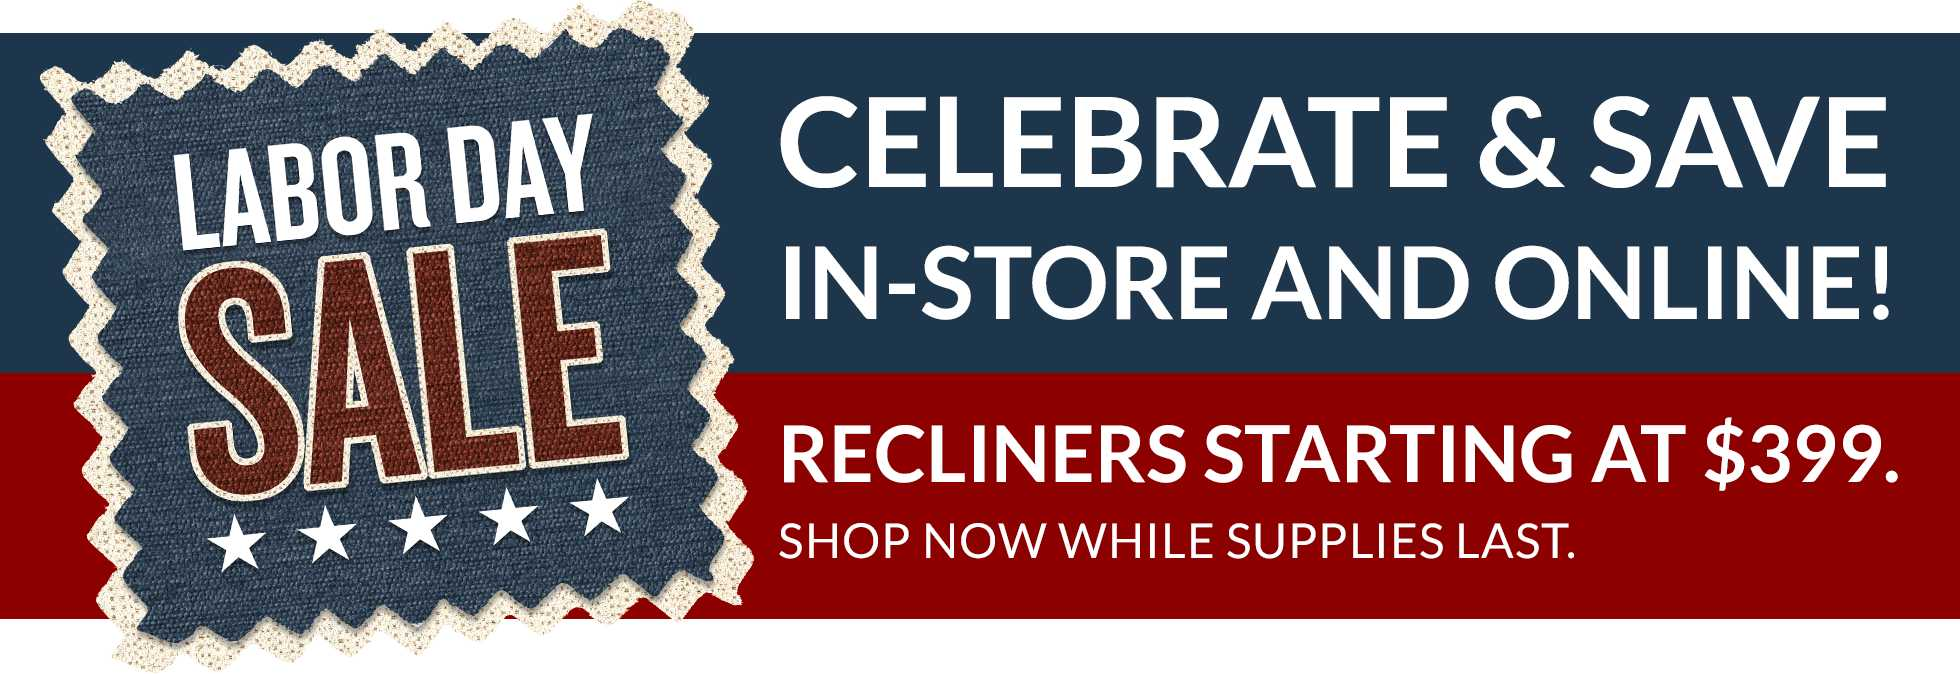 Labor Day Sale - Celebrate & save in-store and online! Recliners starting at $399.